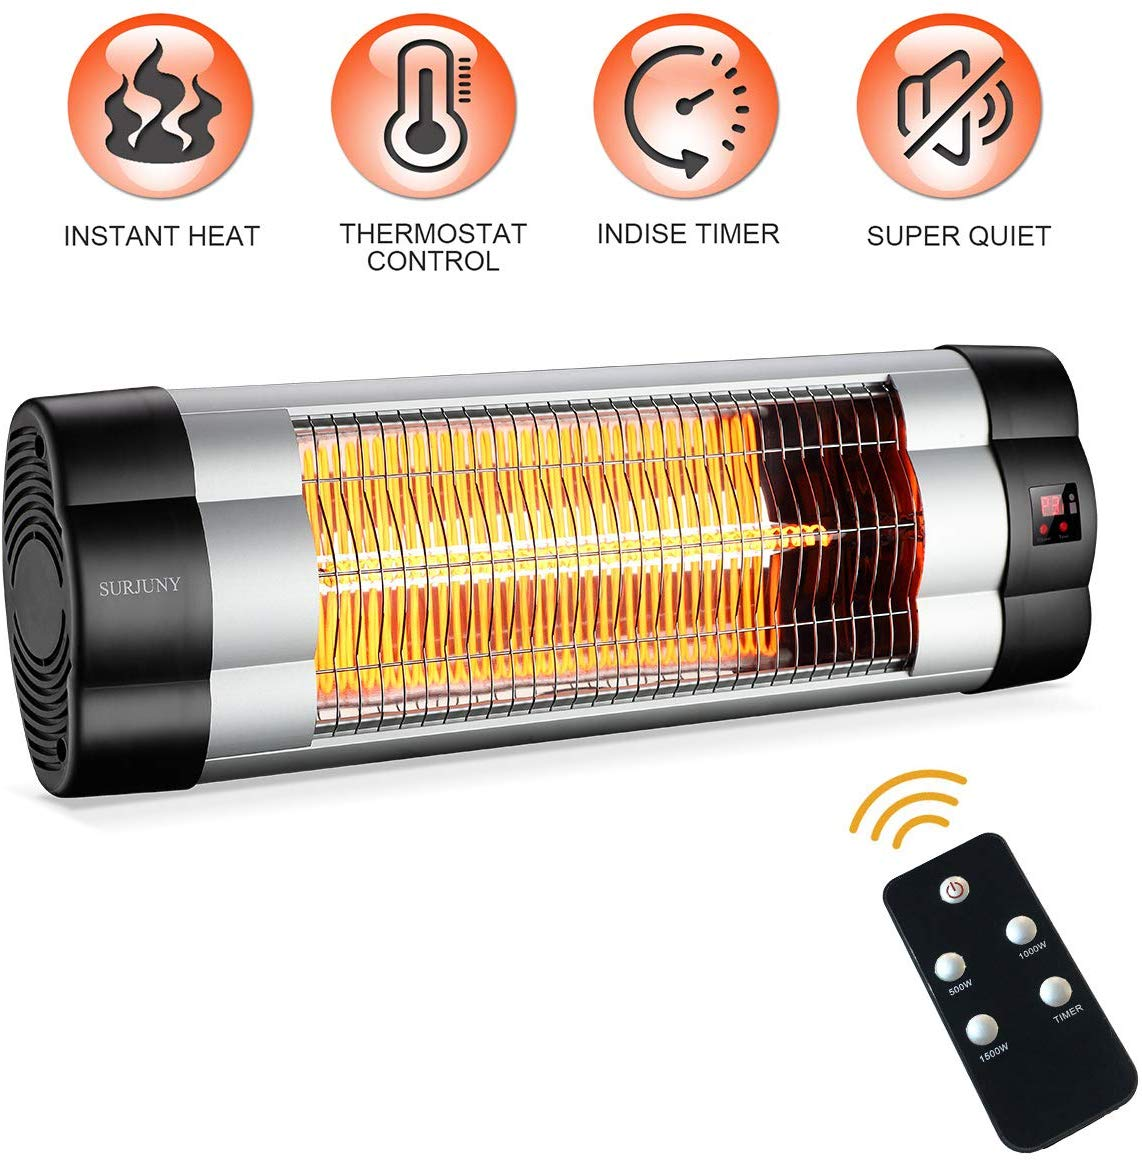 patio heater surjuny electric outdoor patio heater with lcd display 1500w adjustable thermostat 3 seconds instant warm waterproof ip34